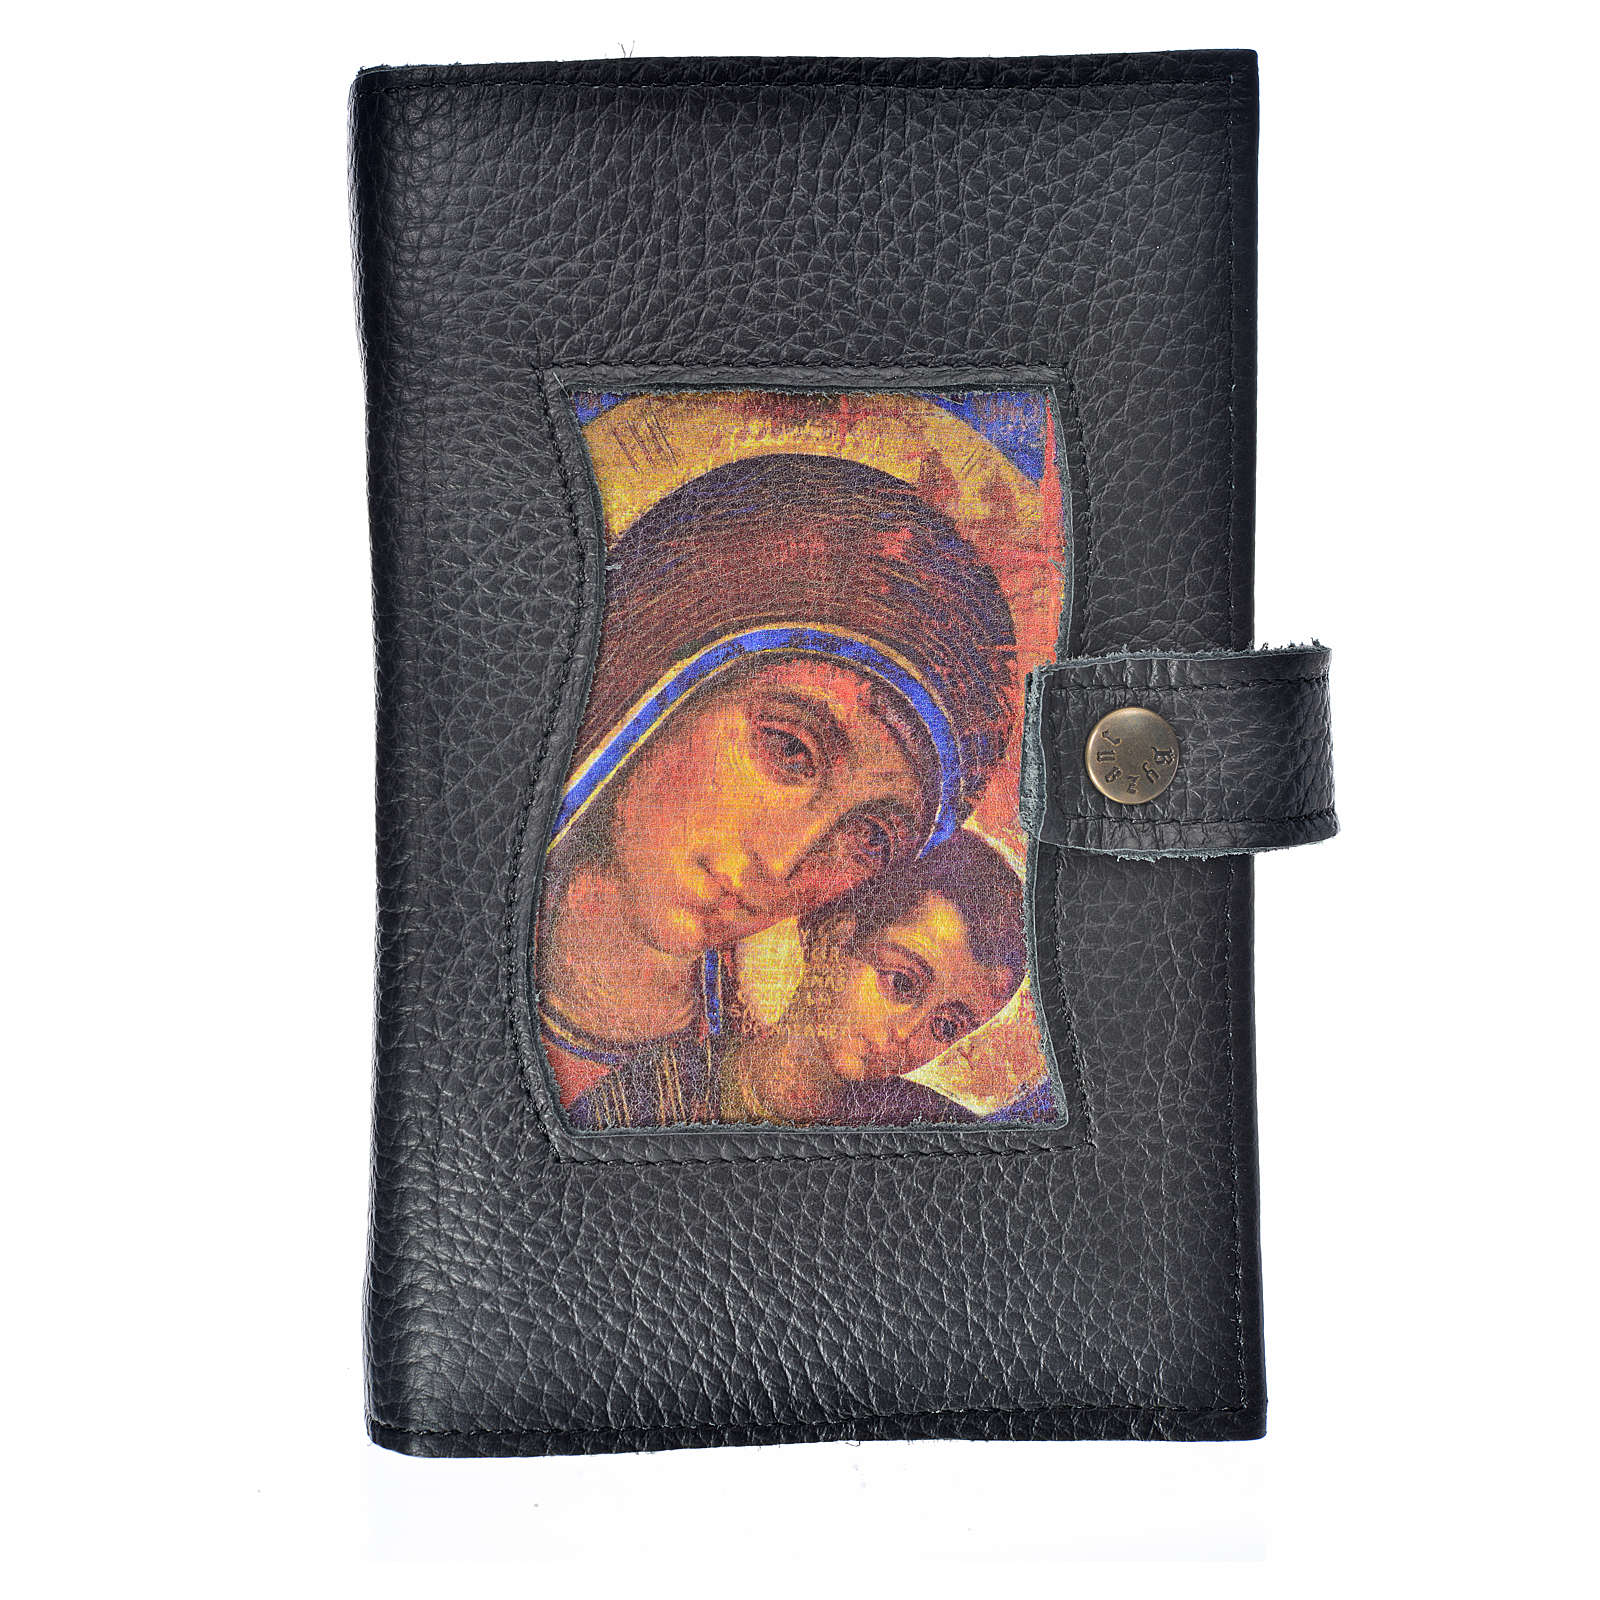 LIturgy of the Hours cover black bonded leather Our Lady of Kiko 4